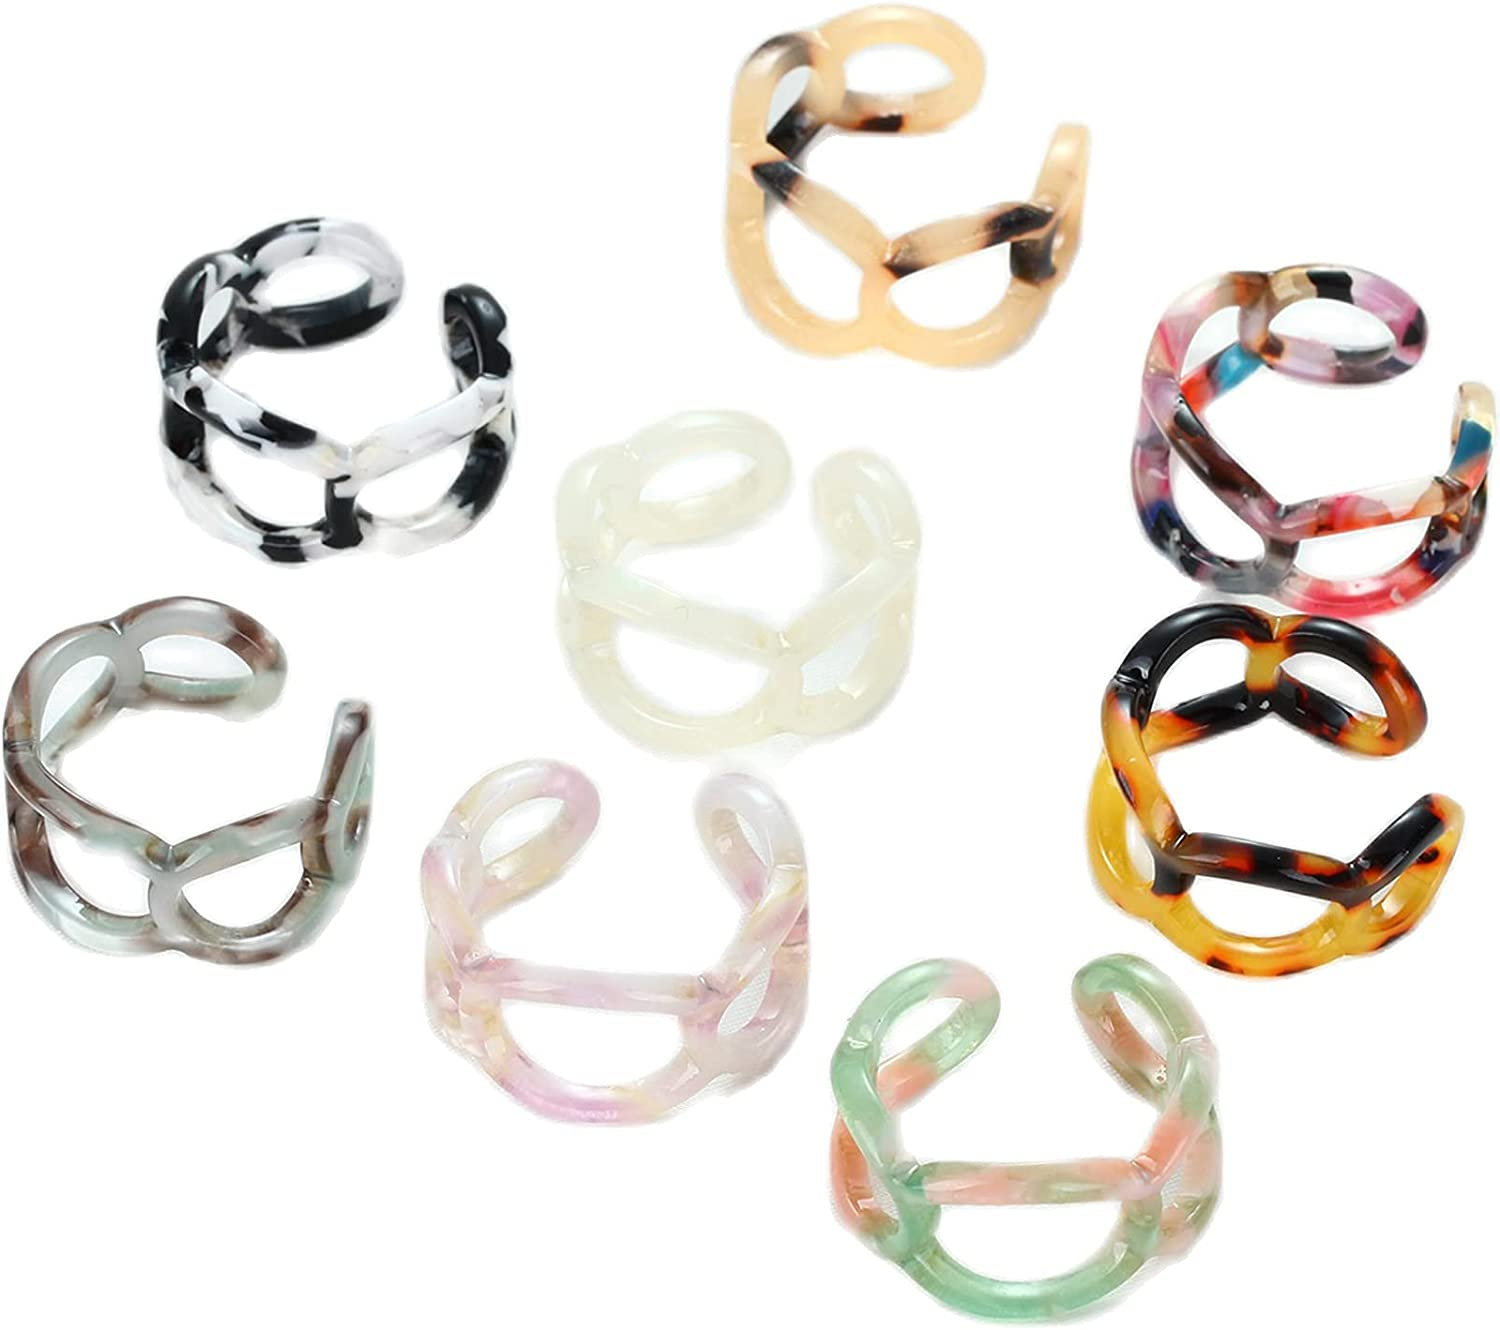 caiyao 8 Pcs Colorful Leopard Print Heart Flower Link Chain Shape Open Knuckle Stackable Joint Acrylic Resin Chunky Band Finger Ring Set Jewelry for Women Girls